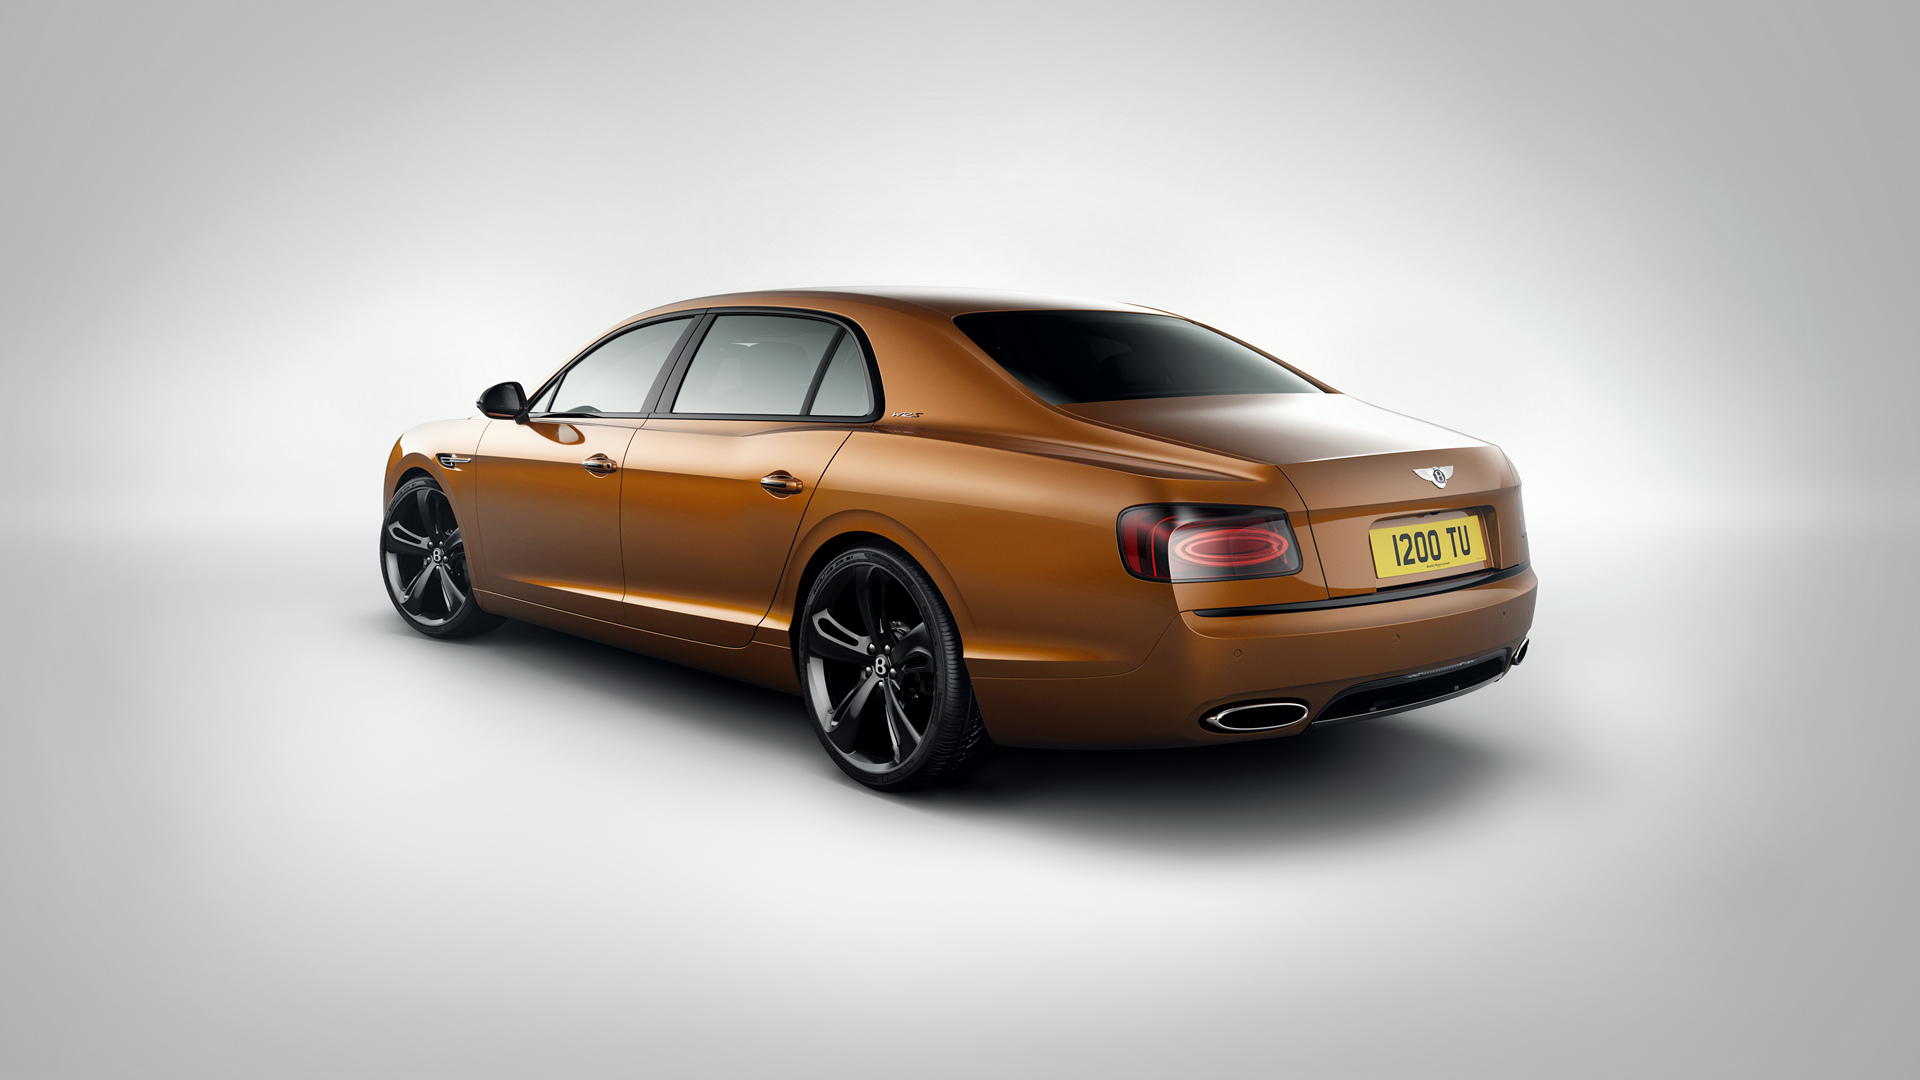 Bentley Flying Spur W12 S © Volkswagen AG